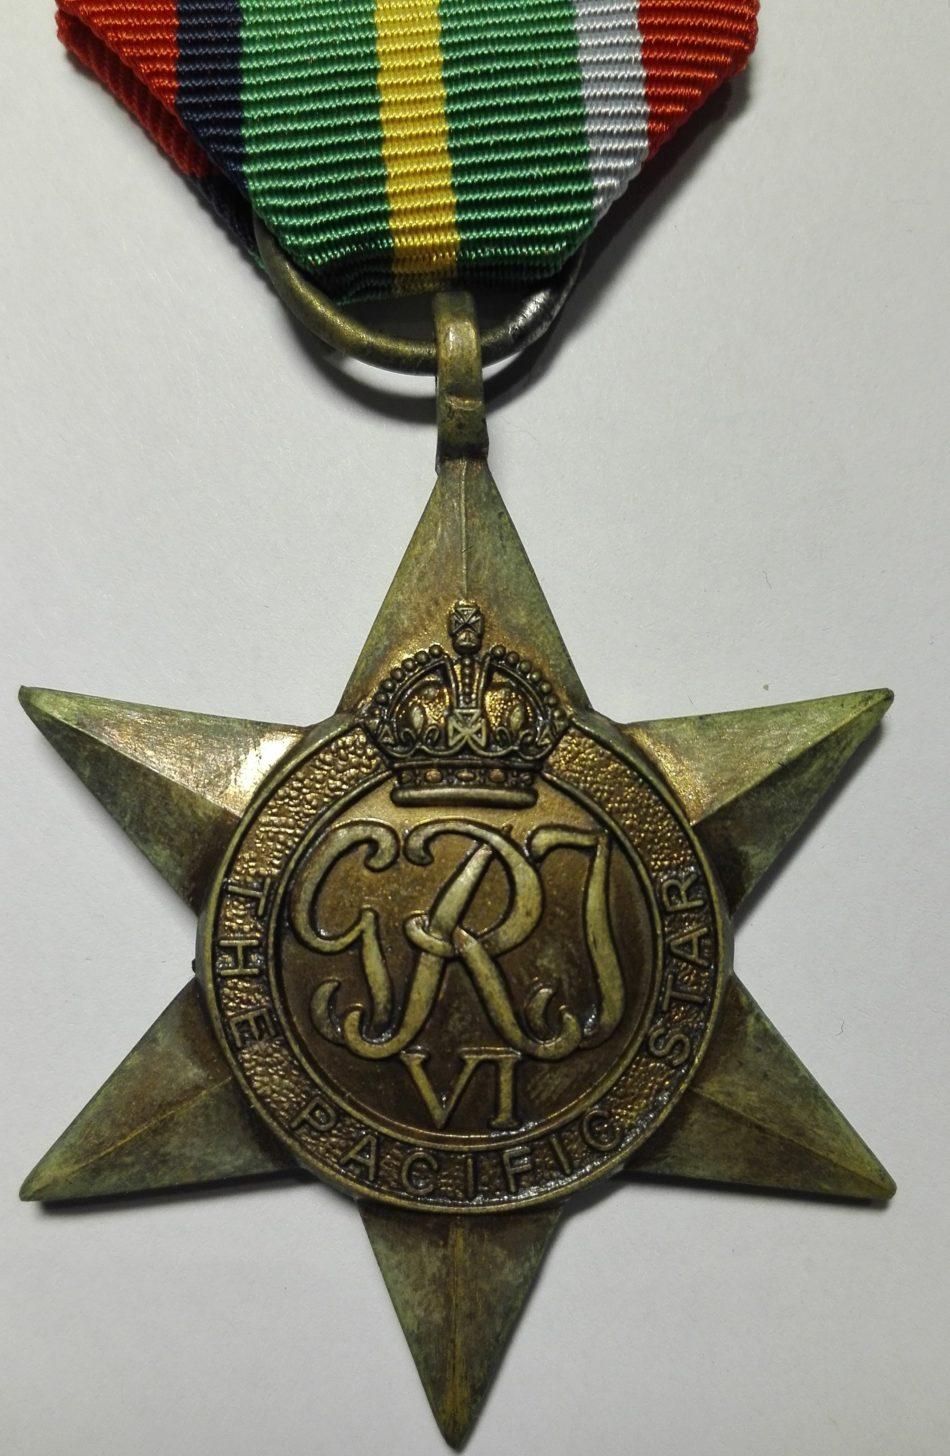 UK WW2 The pacific star medal Obverse